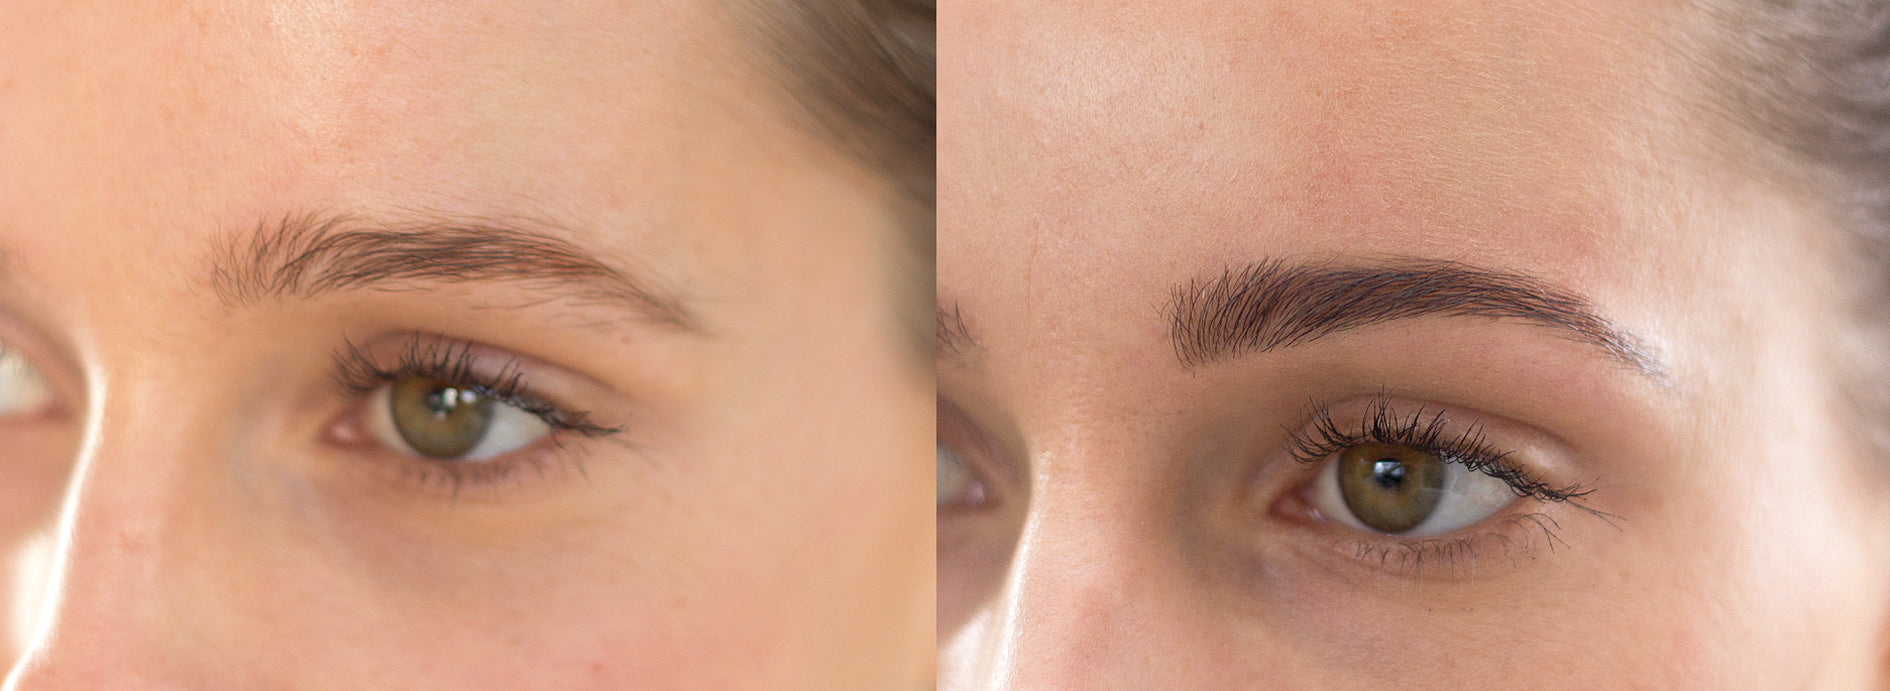 Coconut oil eyebrows before and after